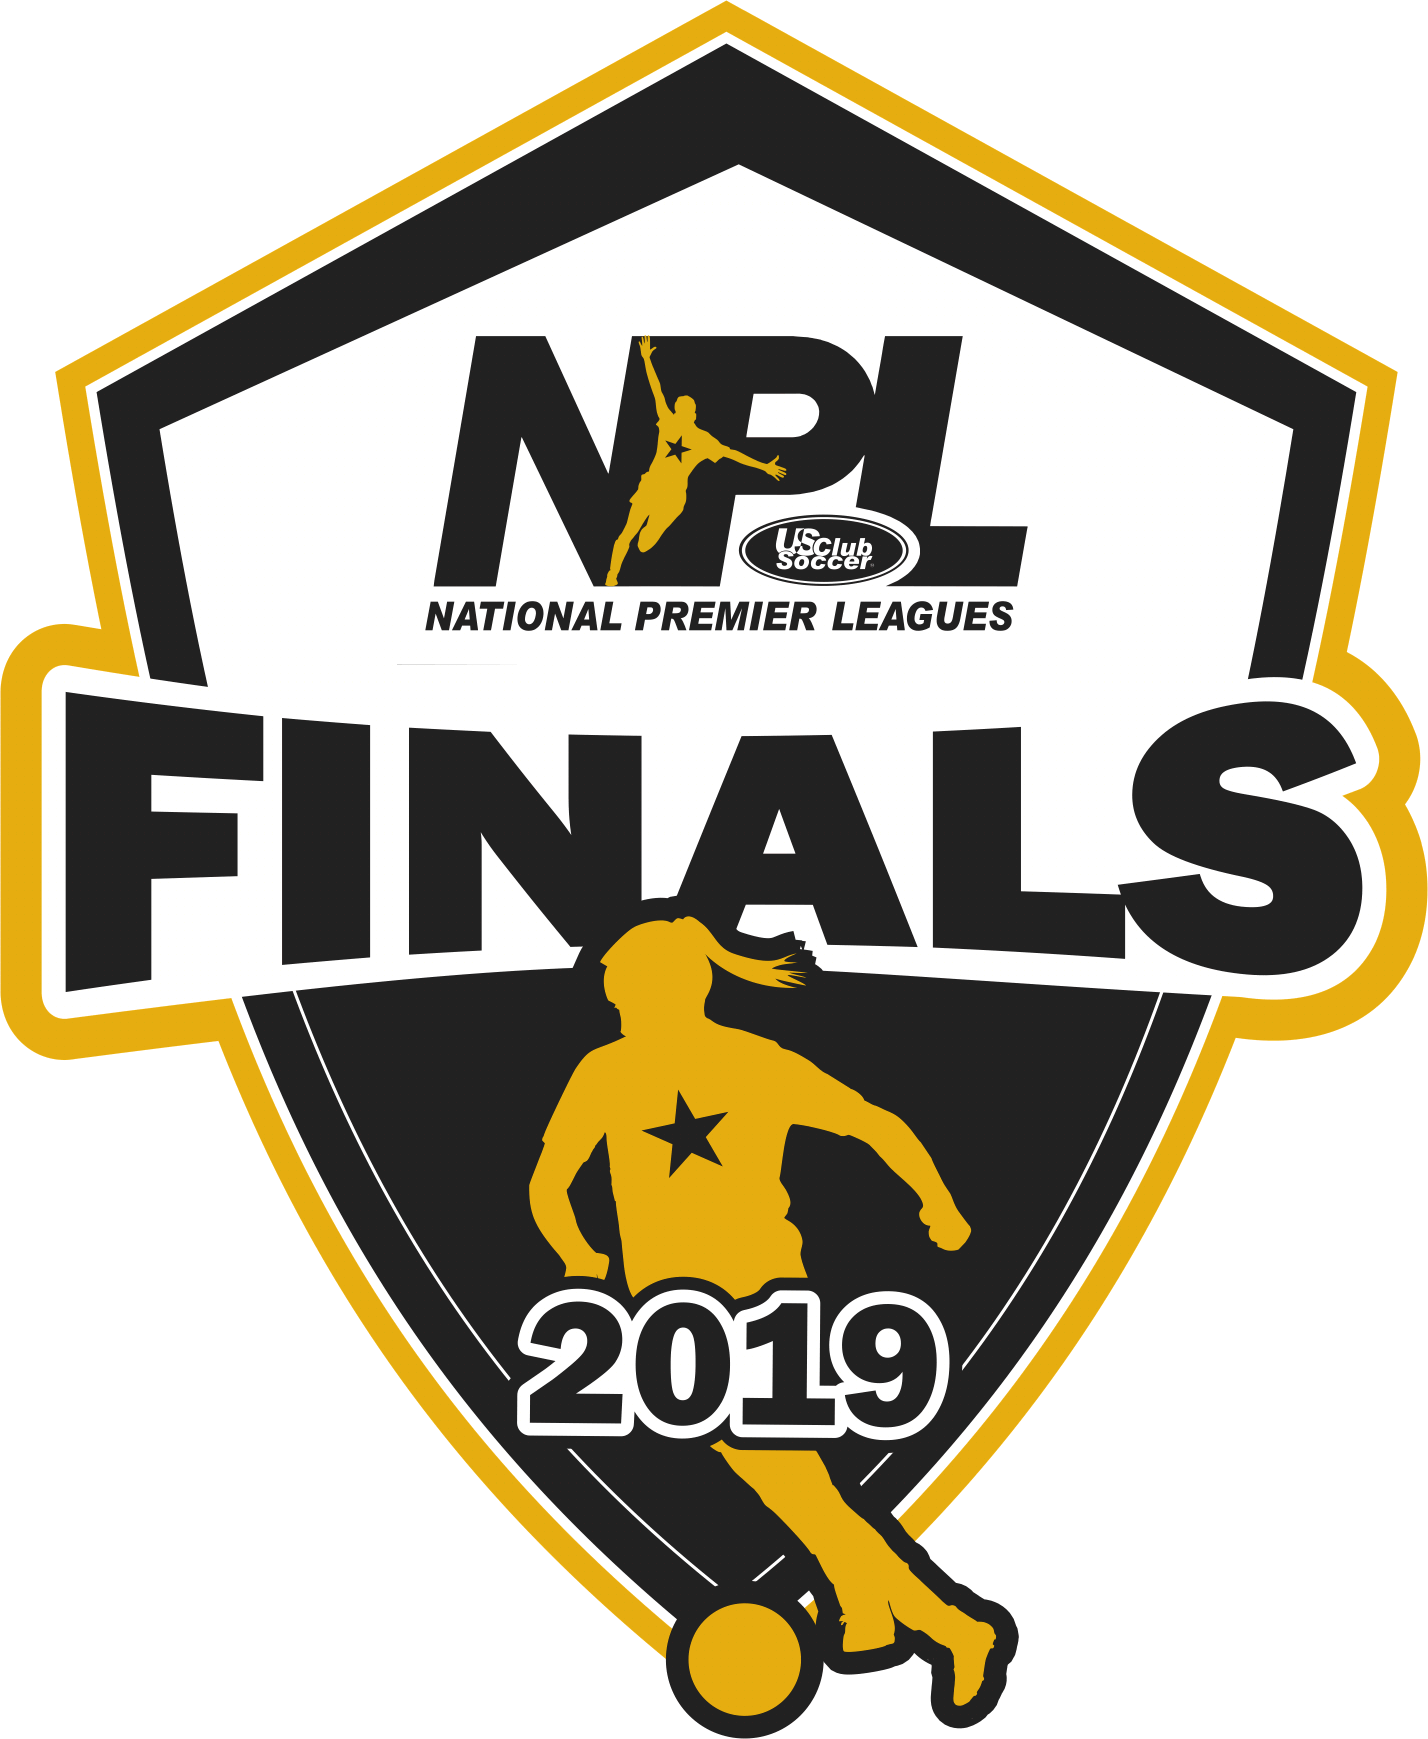 2019 npl finals information | national premier leagues